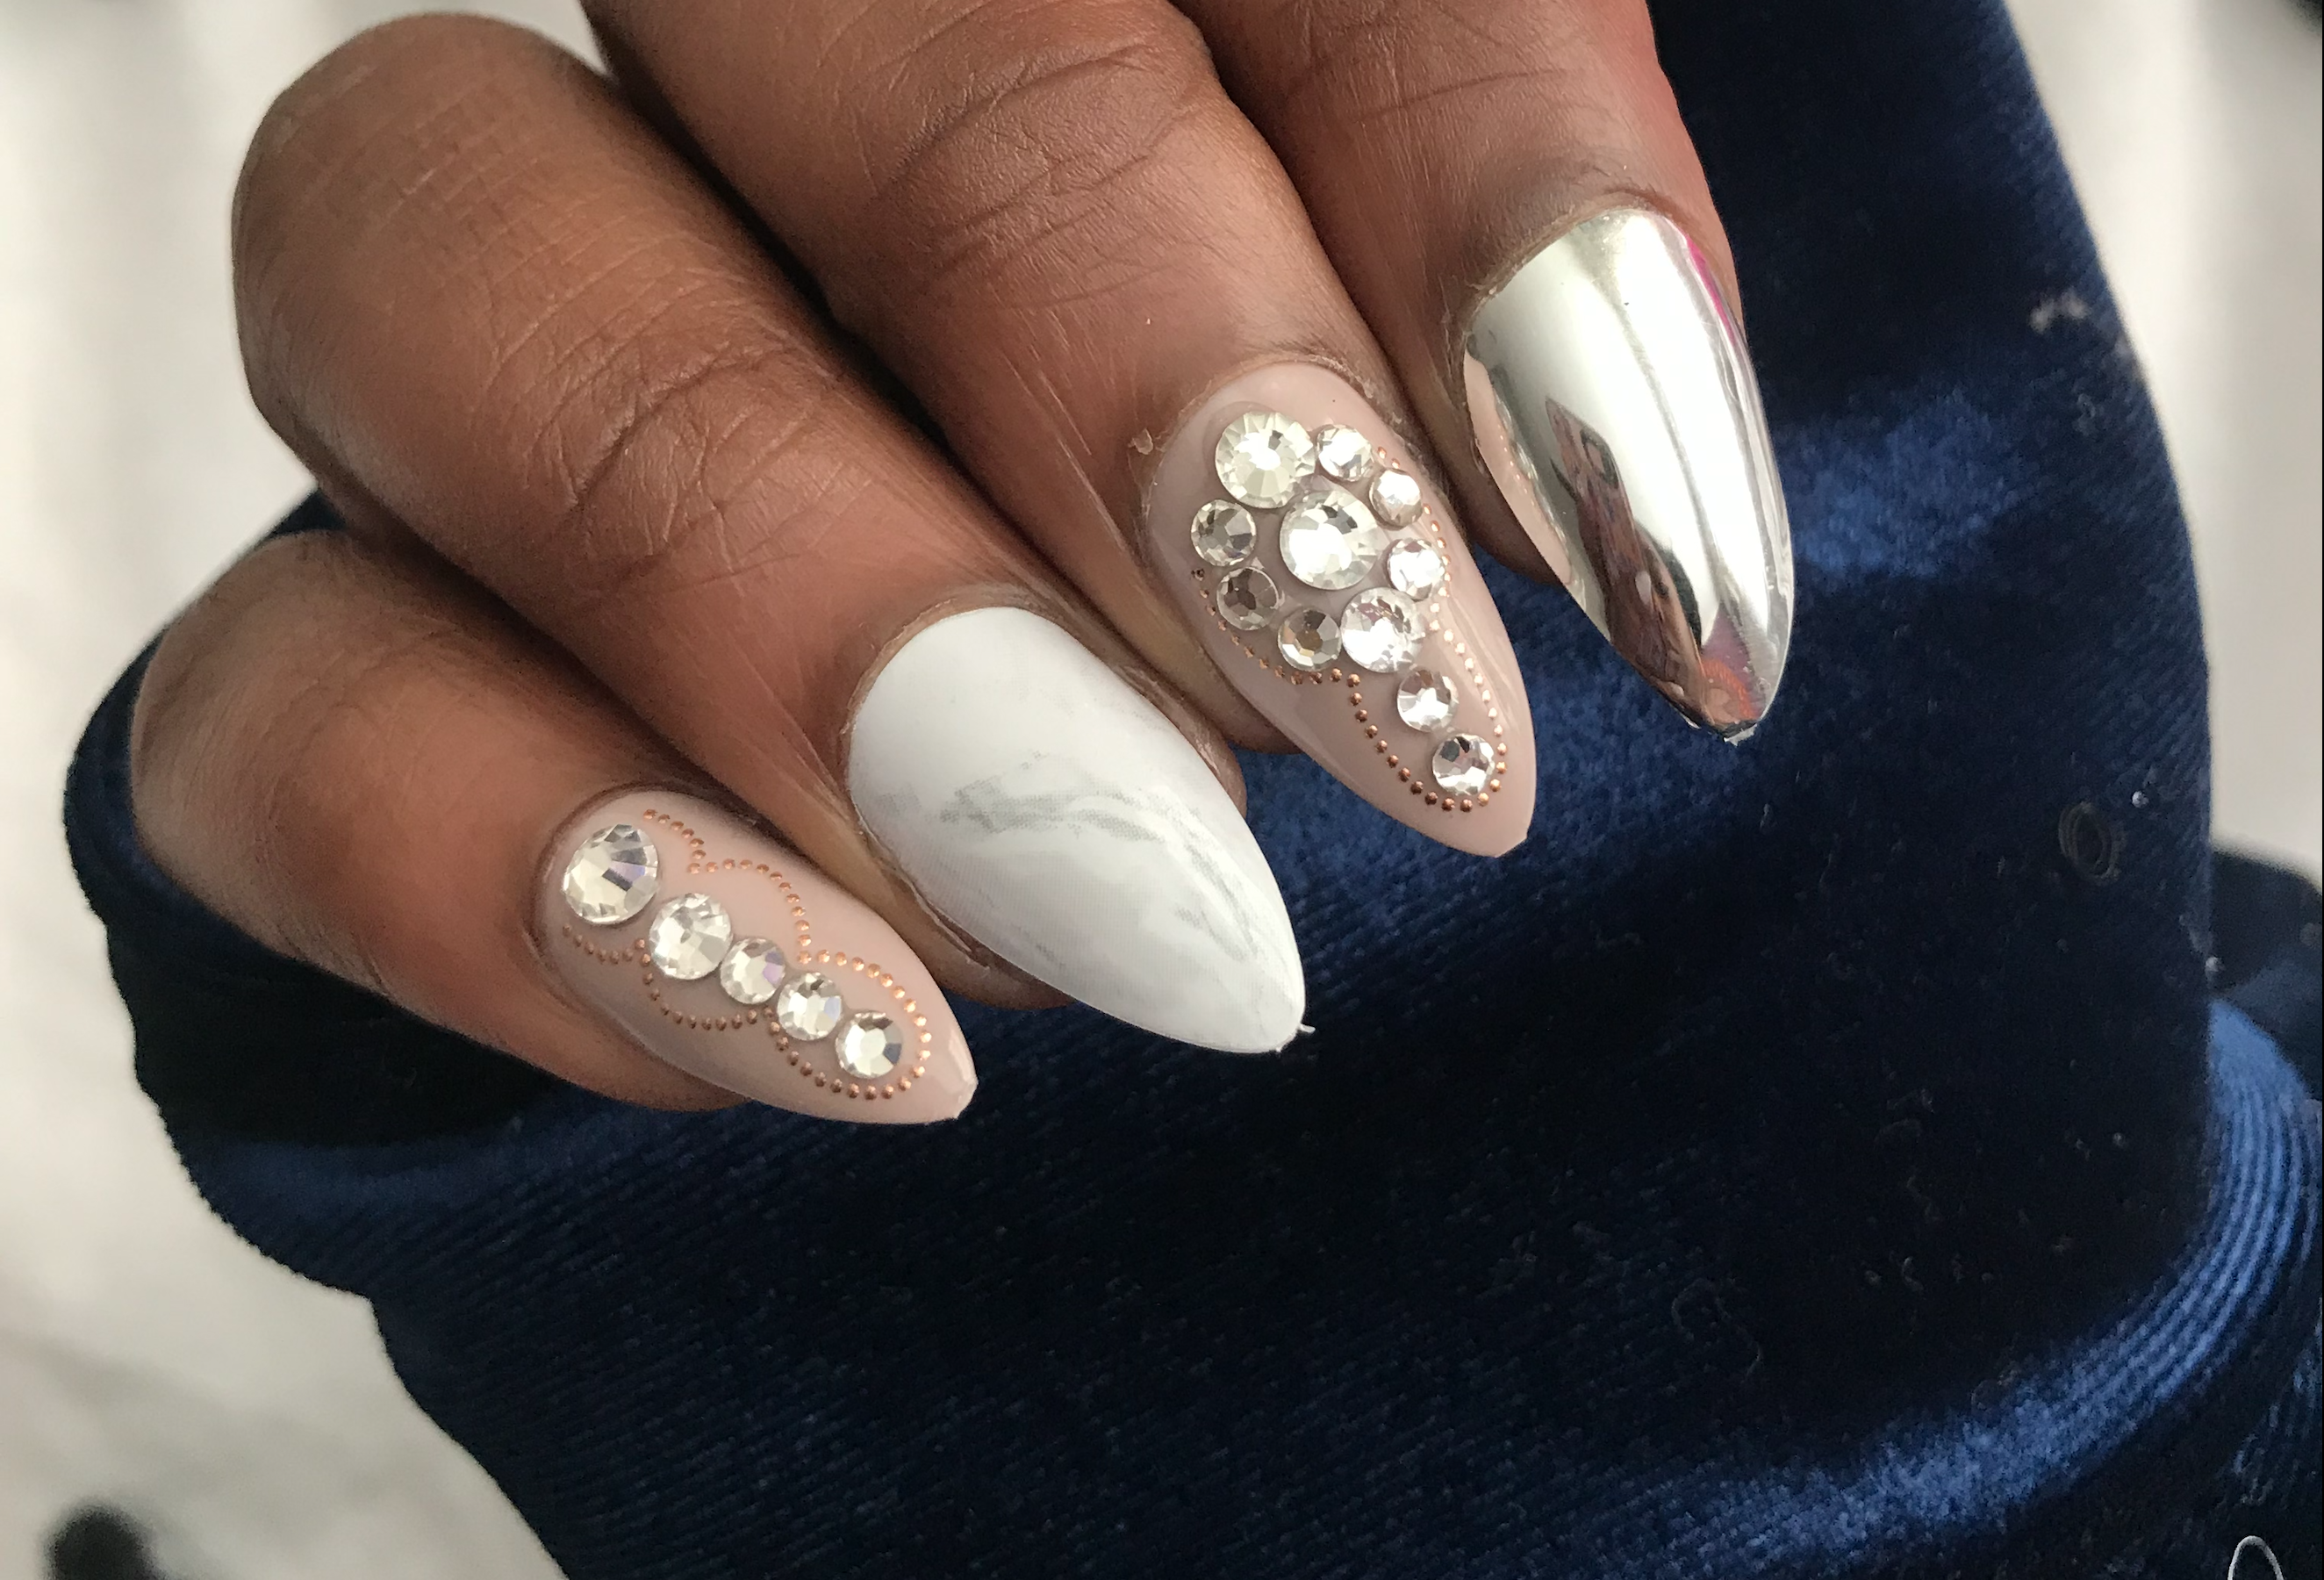 10 under $10 chic KISS press-on nails for those who are pressed for time